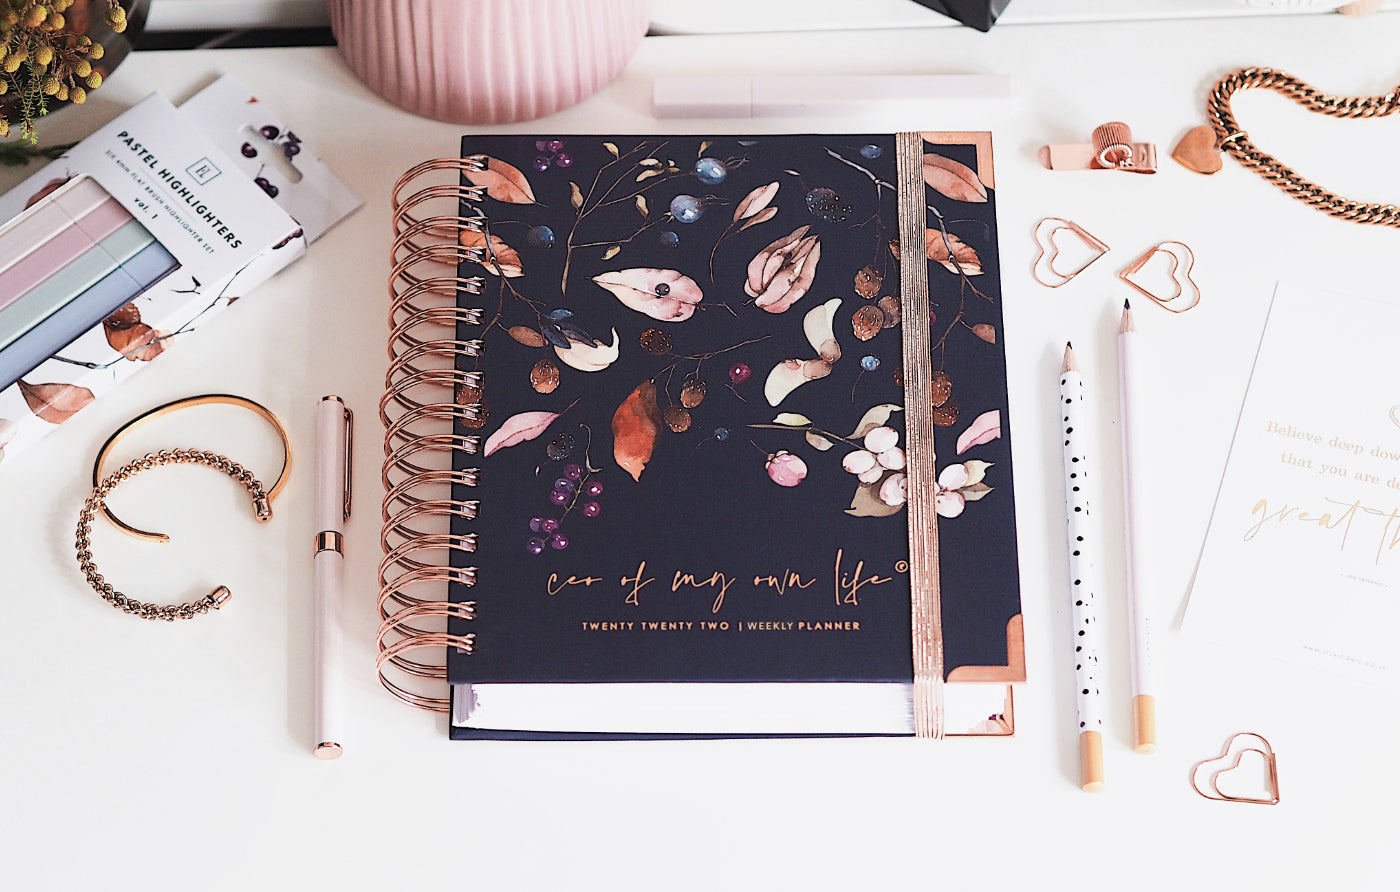 2022 Daily & Weekly Life Planners • CEO of My Own Life® • Ella Iconic Stationery